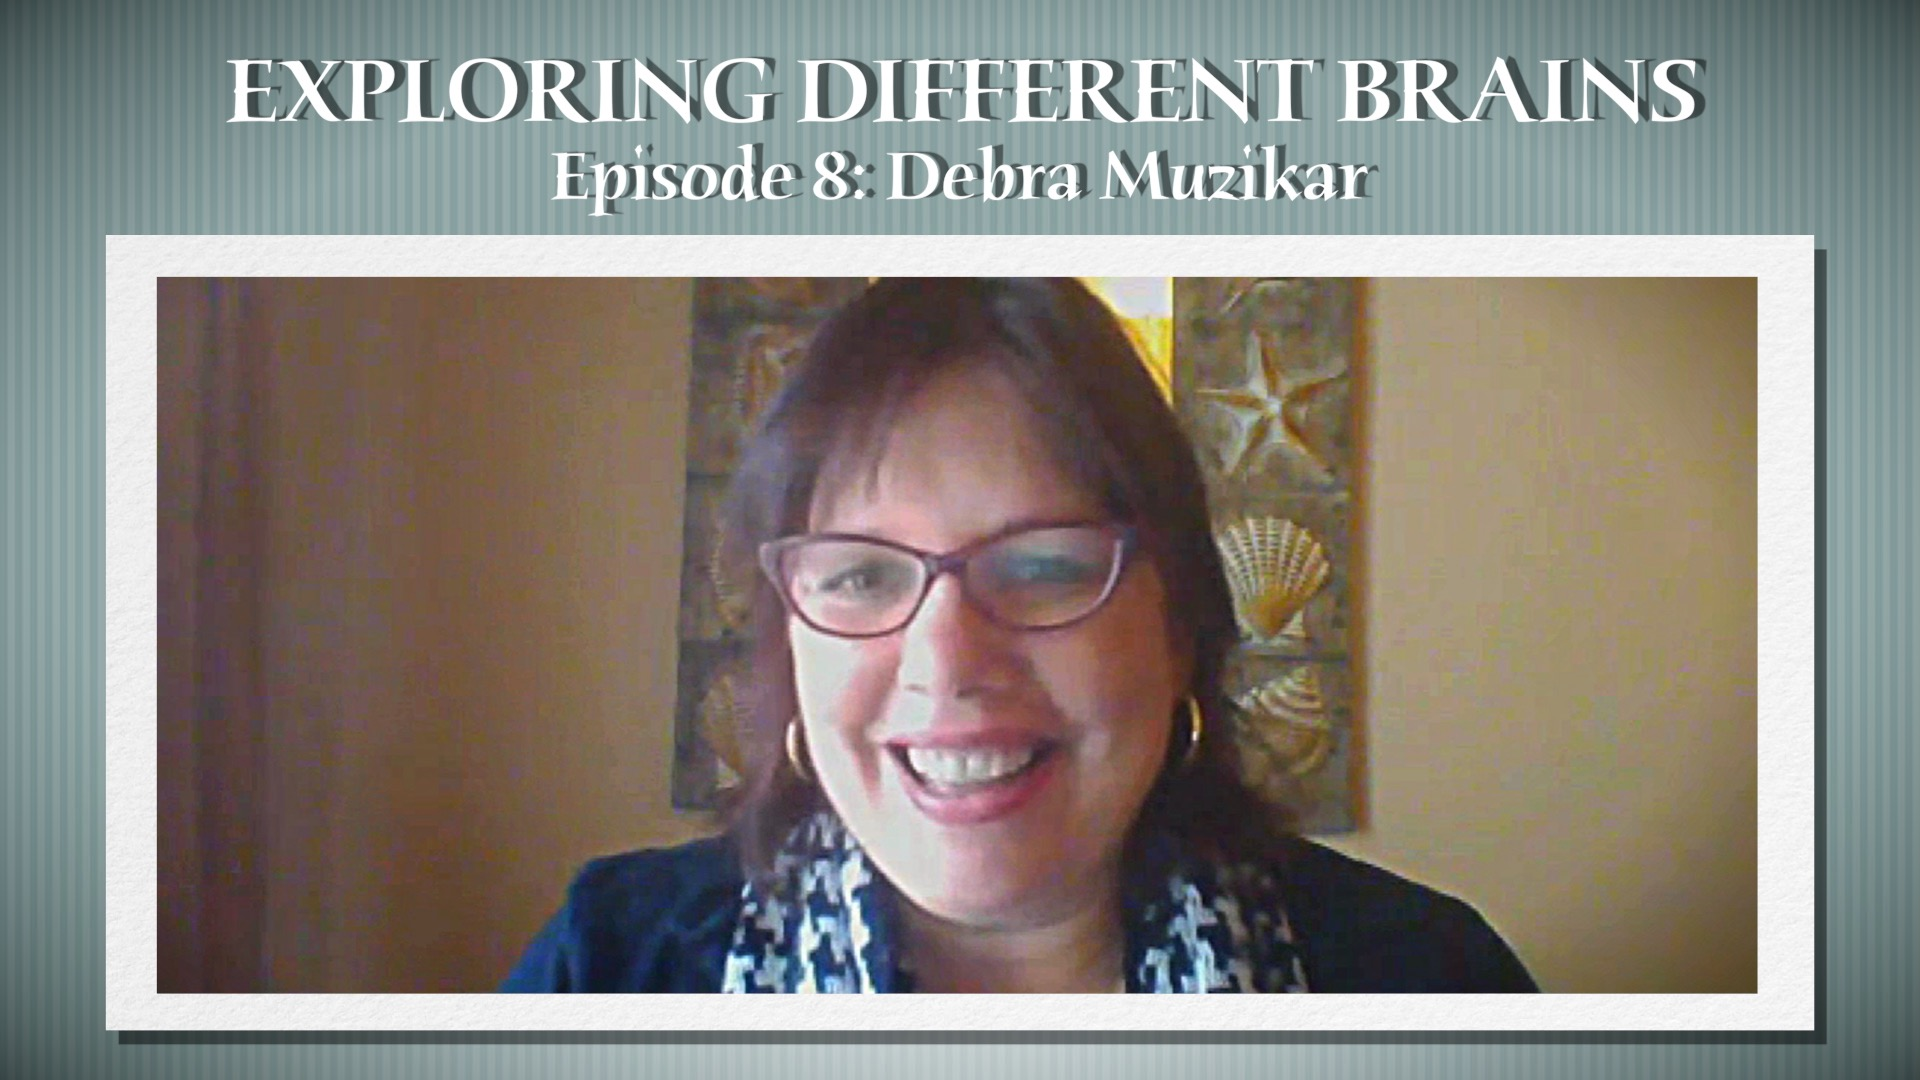 EXPLORING DIFFERENT BRAINS - Episode 08: Debra Muzikar